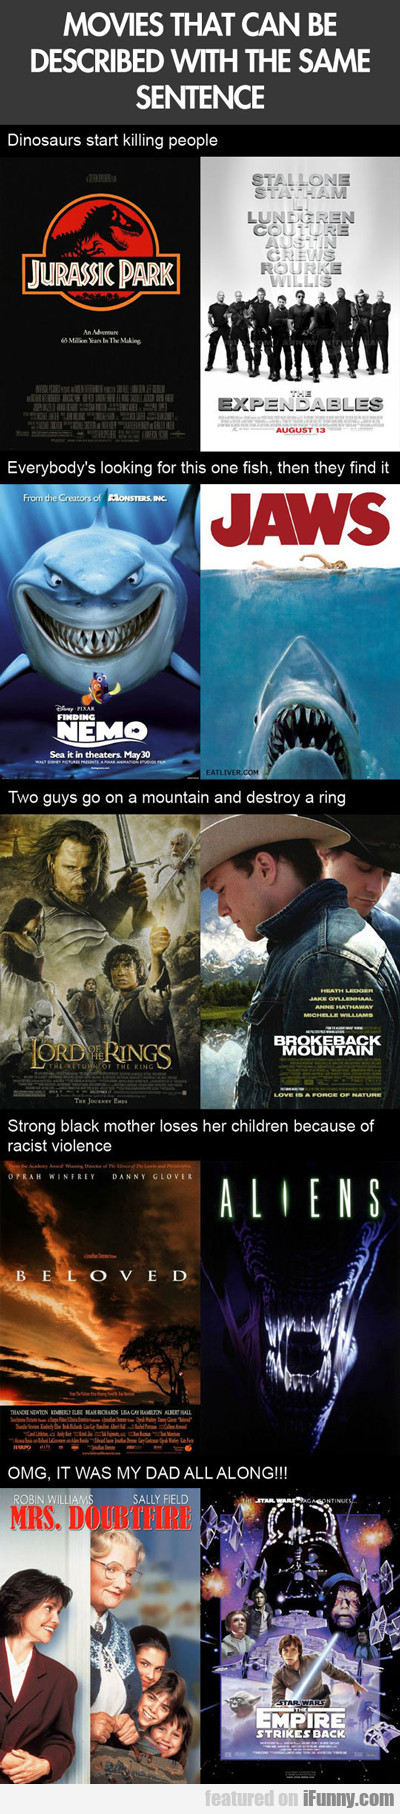 movies that can be described with the same...